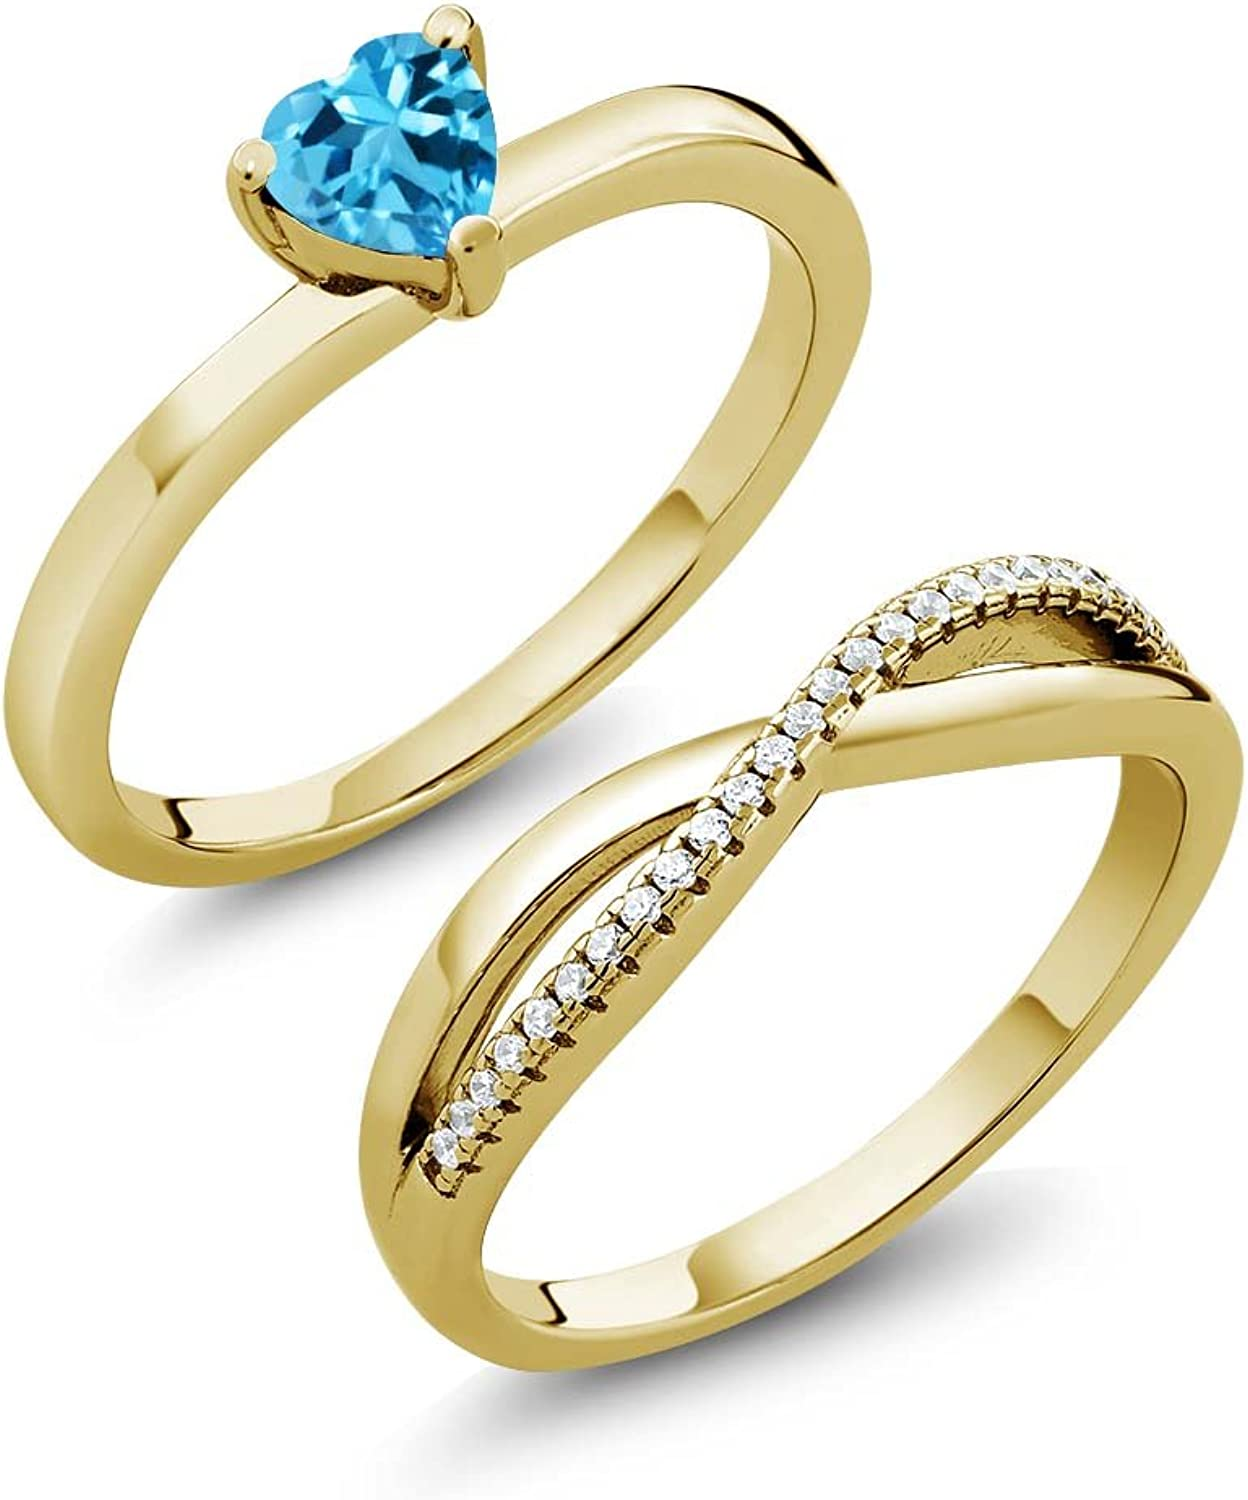 0.86 Ct Swiss bluee Topaz 18K Yellow gold Plated Silver Engagement Wedding Ring Set